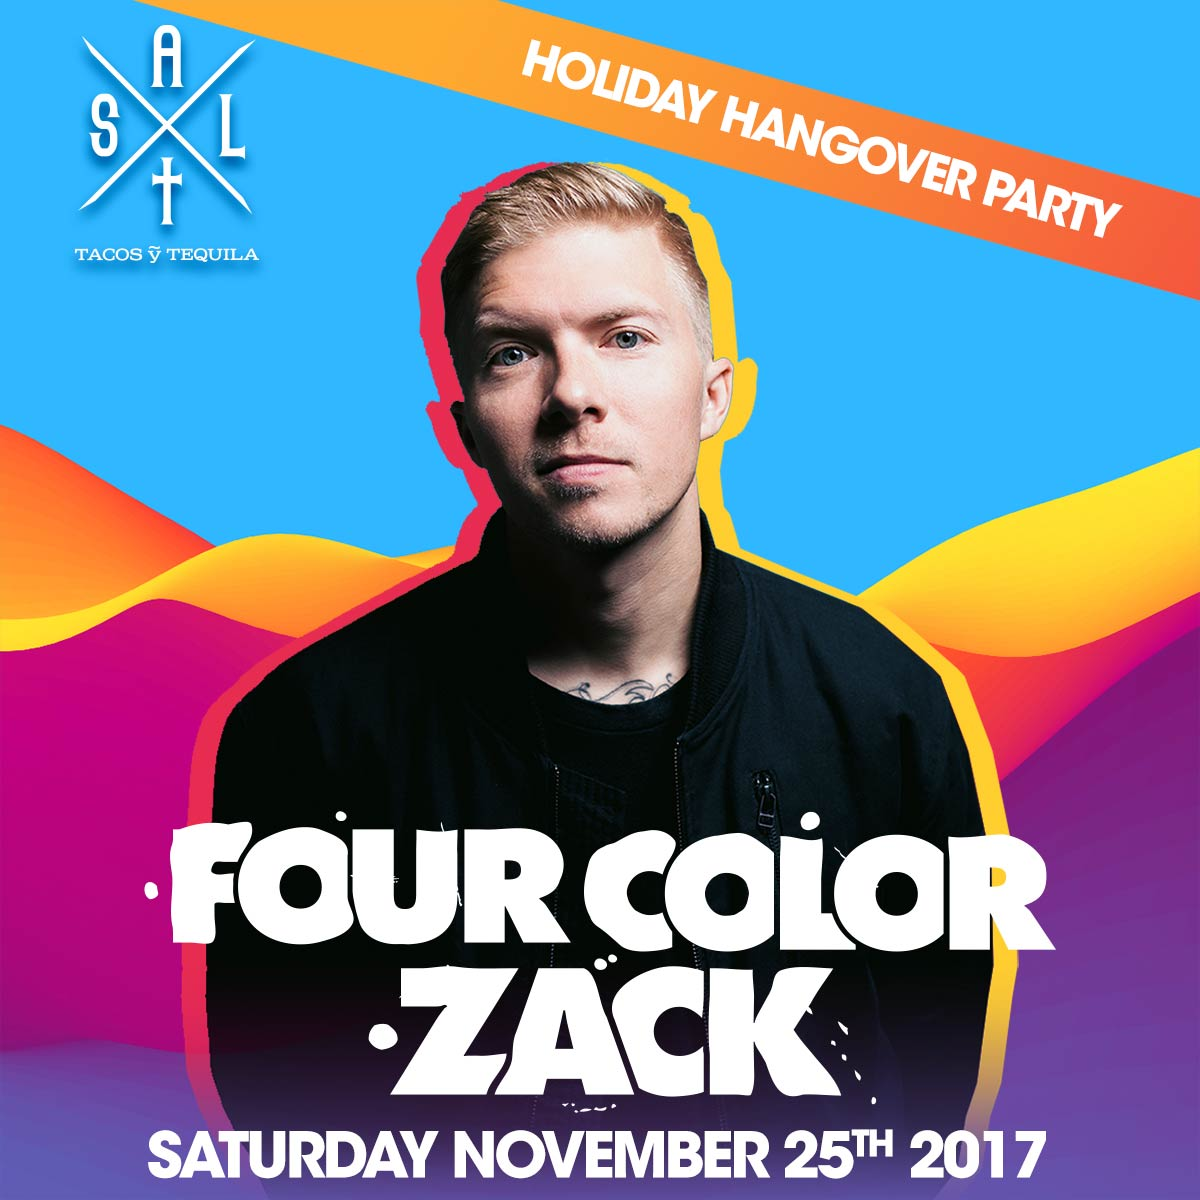 Flyer for Four Color Zack